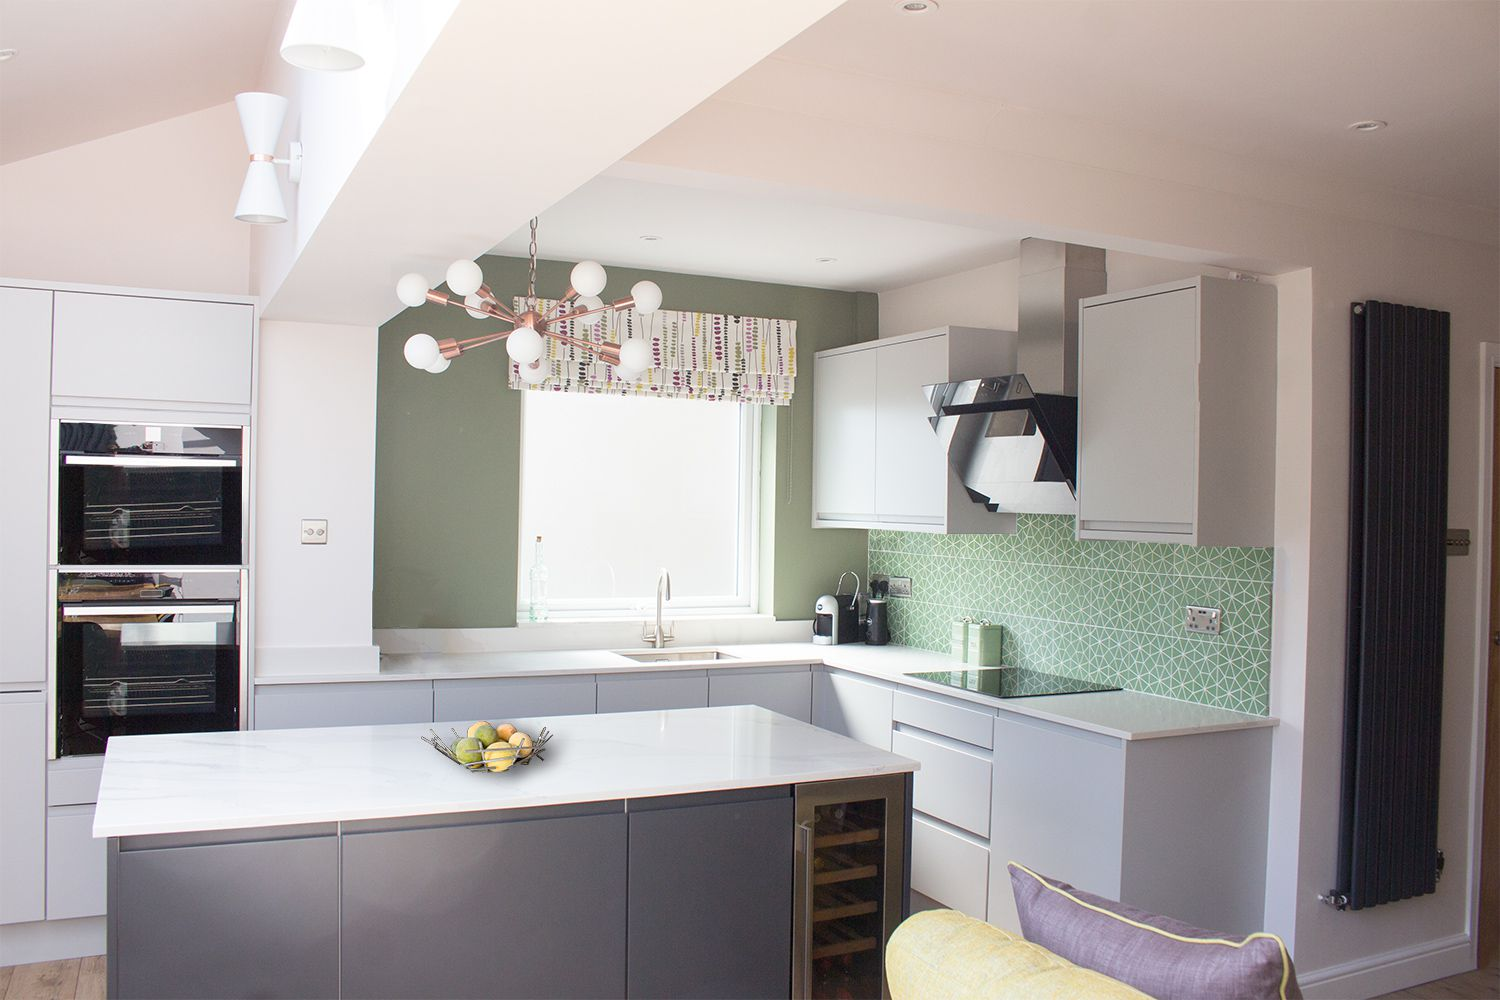 A photo of the kitchen area with light grey cabinets, marble worktops and a funky green geometric tile for the splashback.